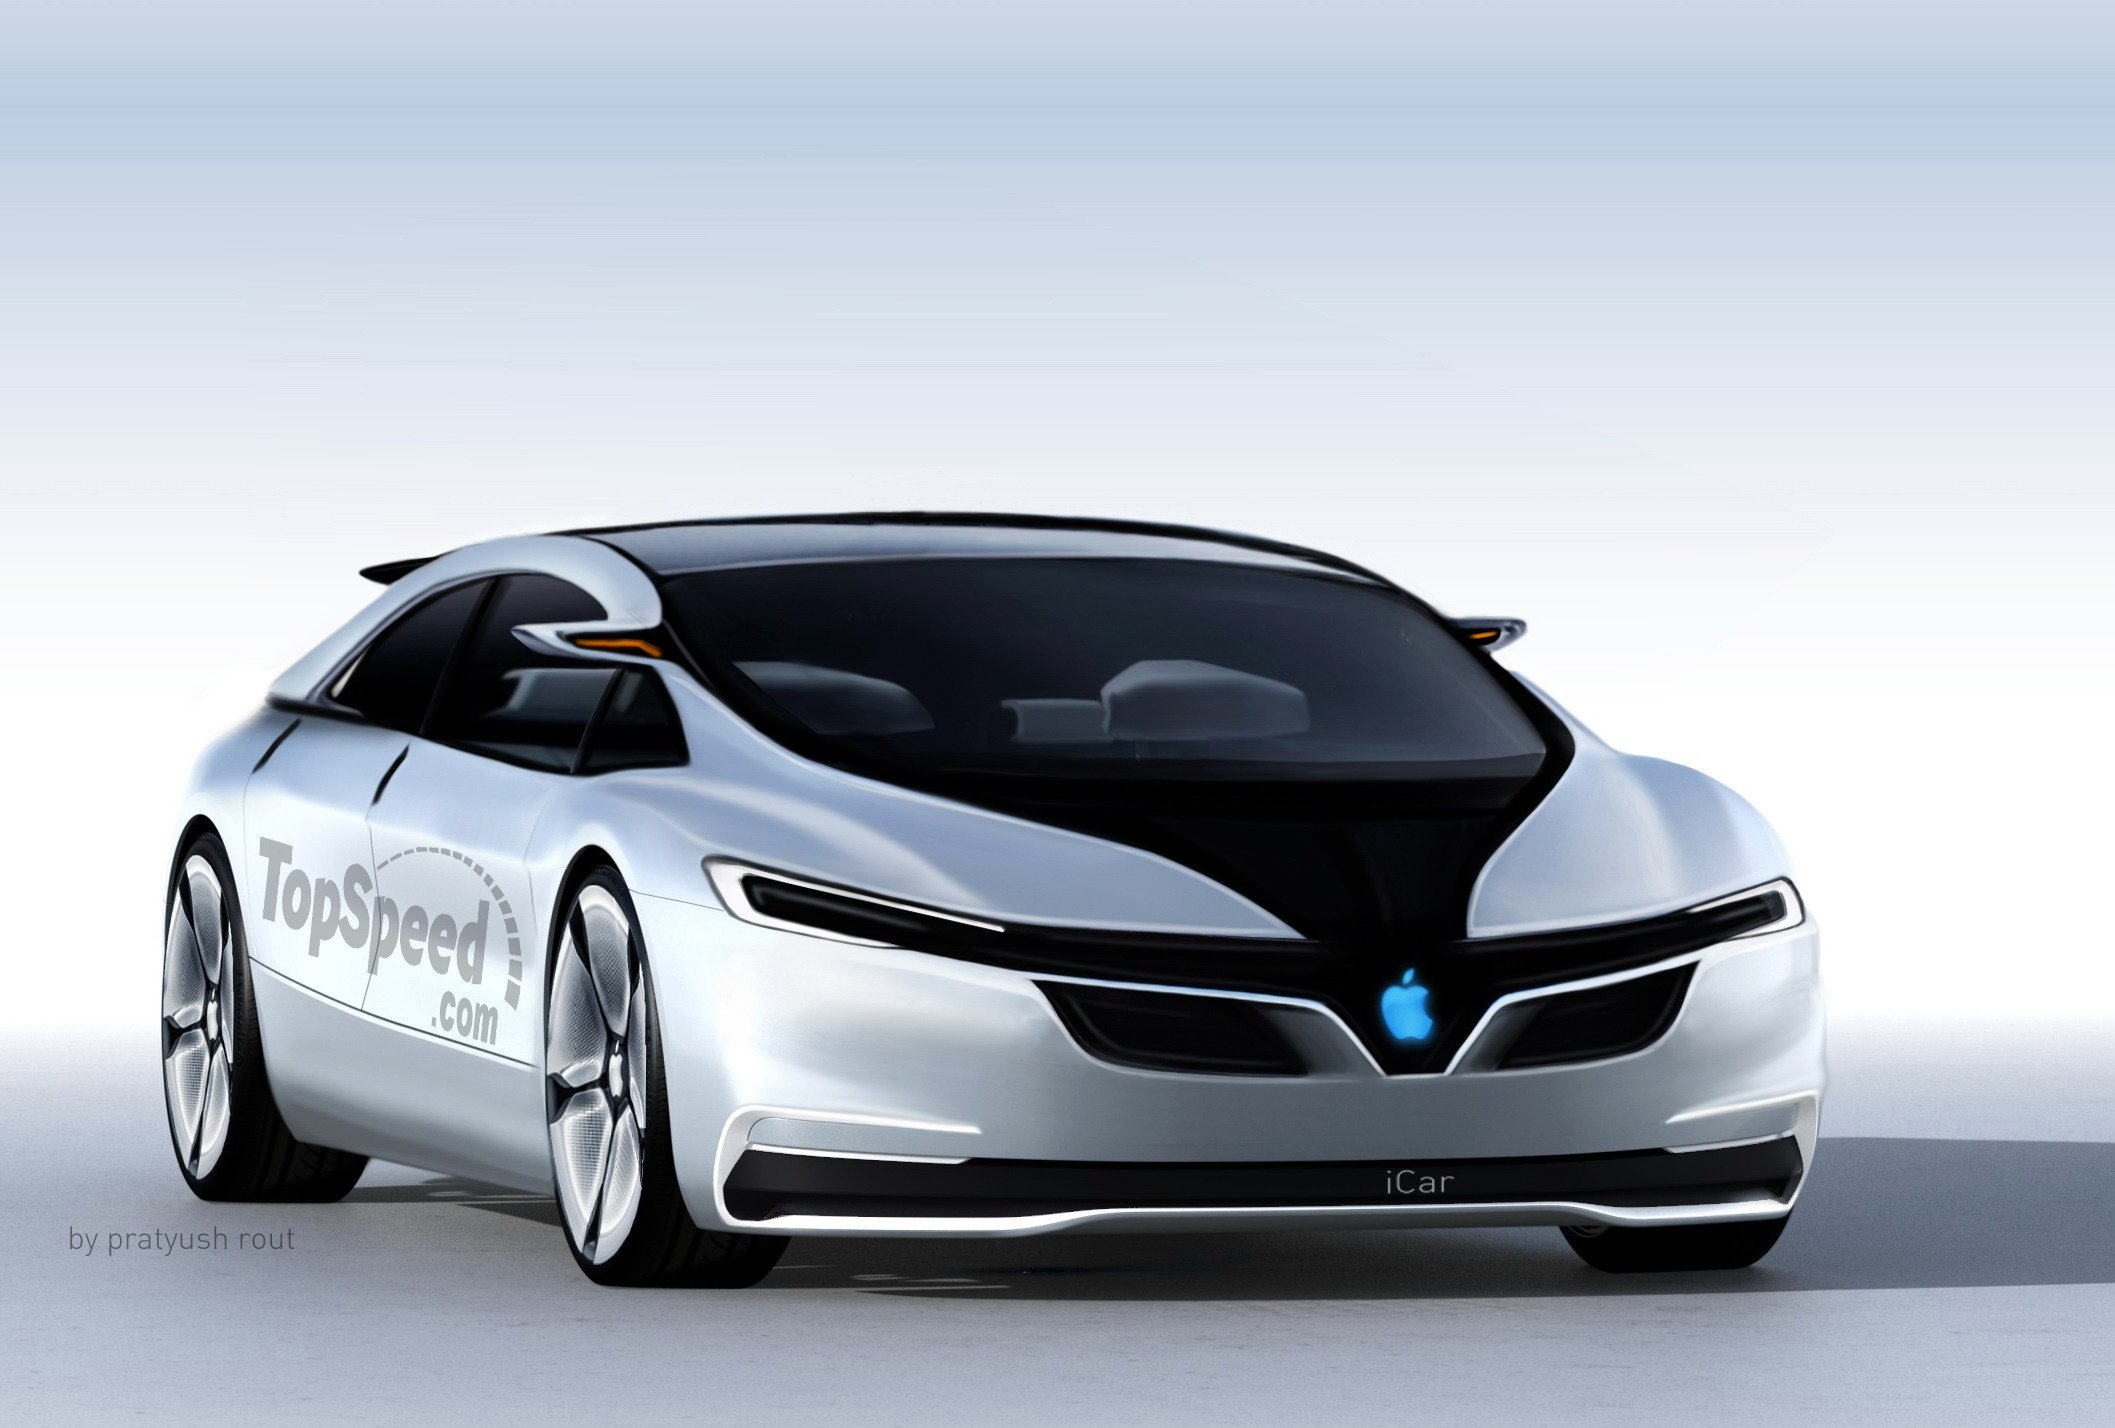 An Apple Car concept image commissioned by the Top Speed magazine